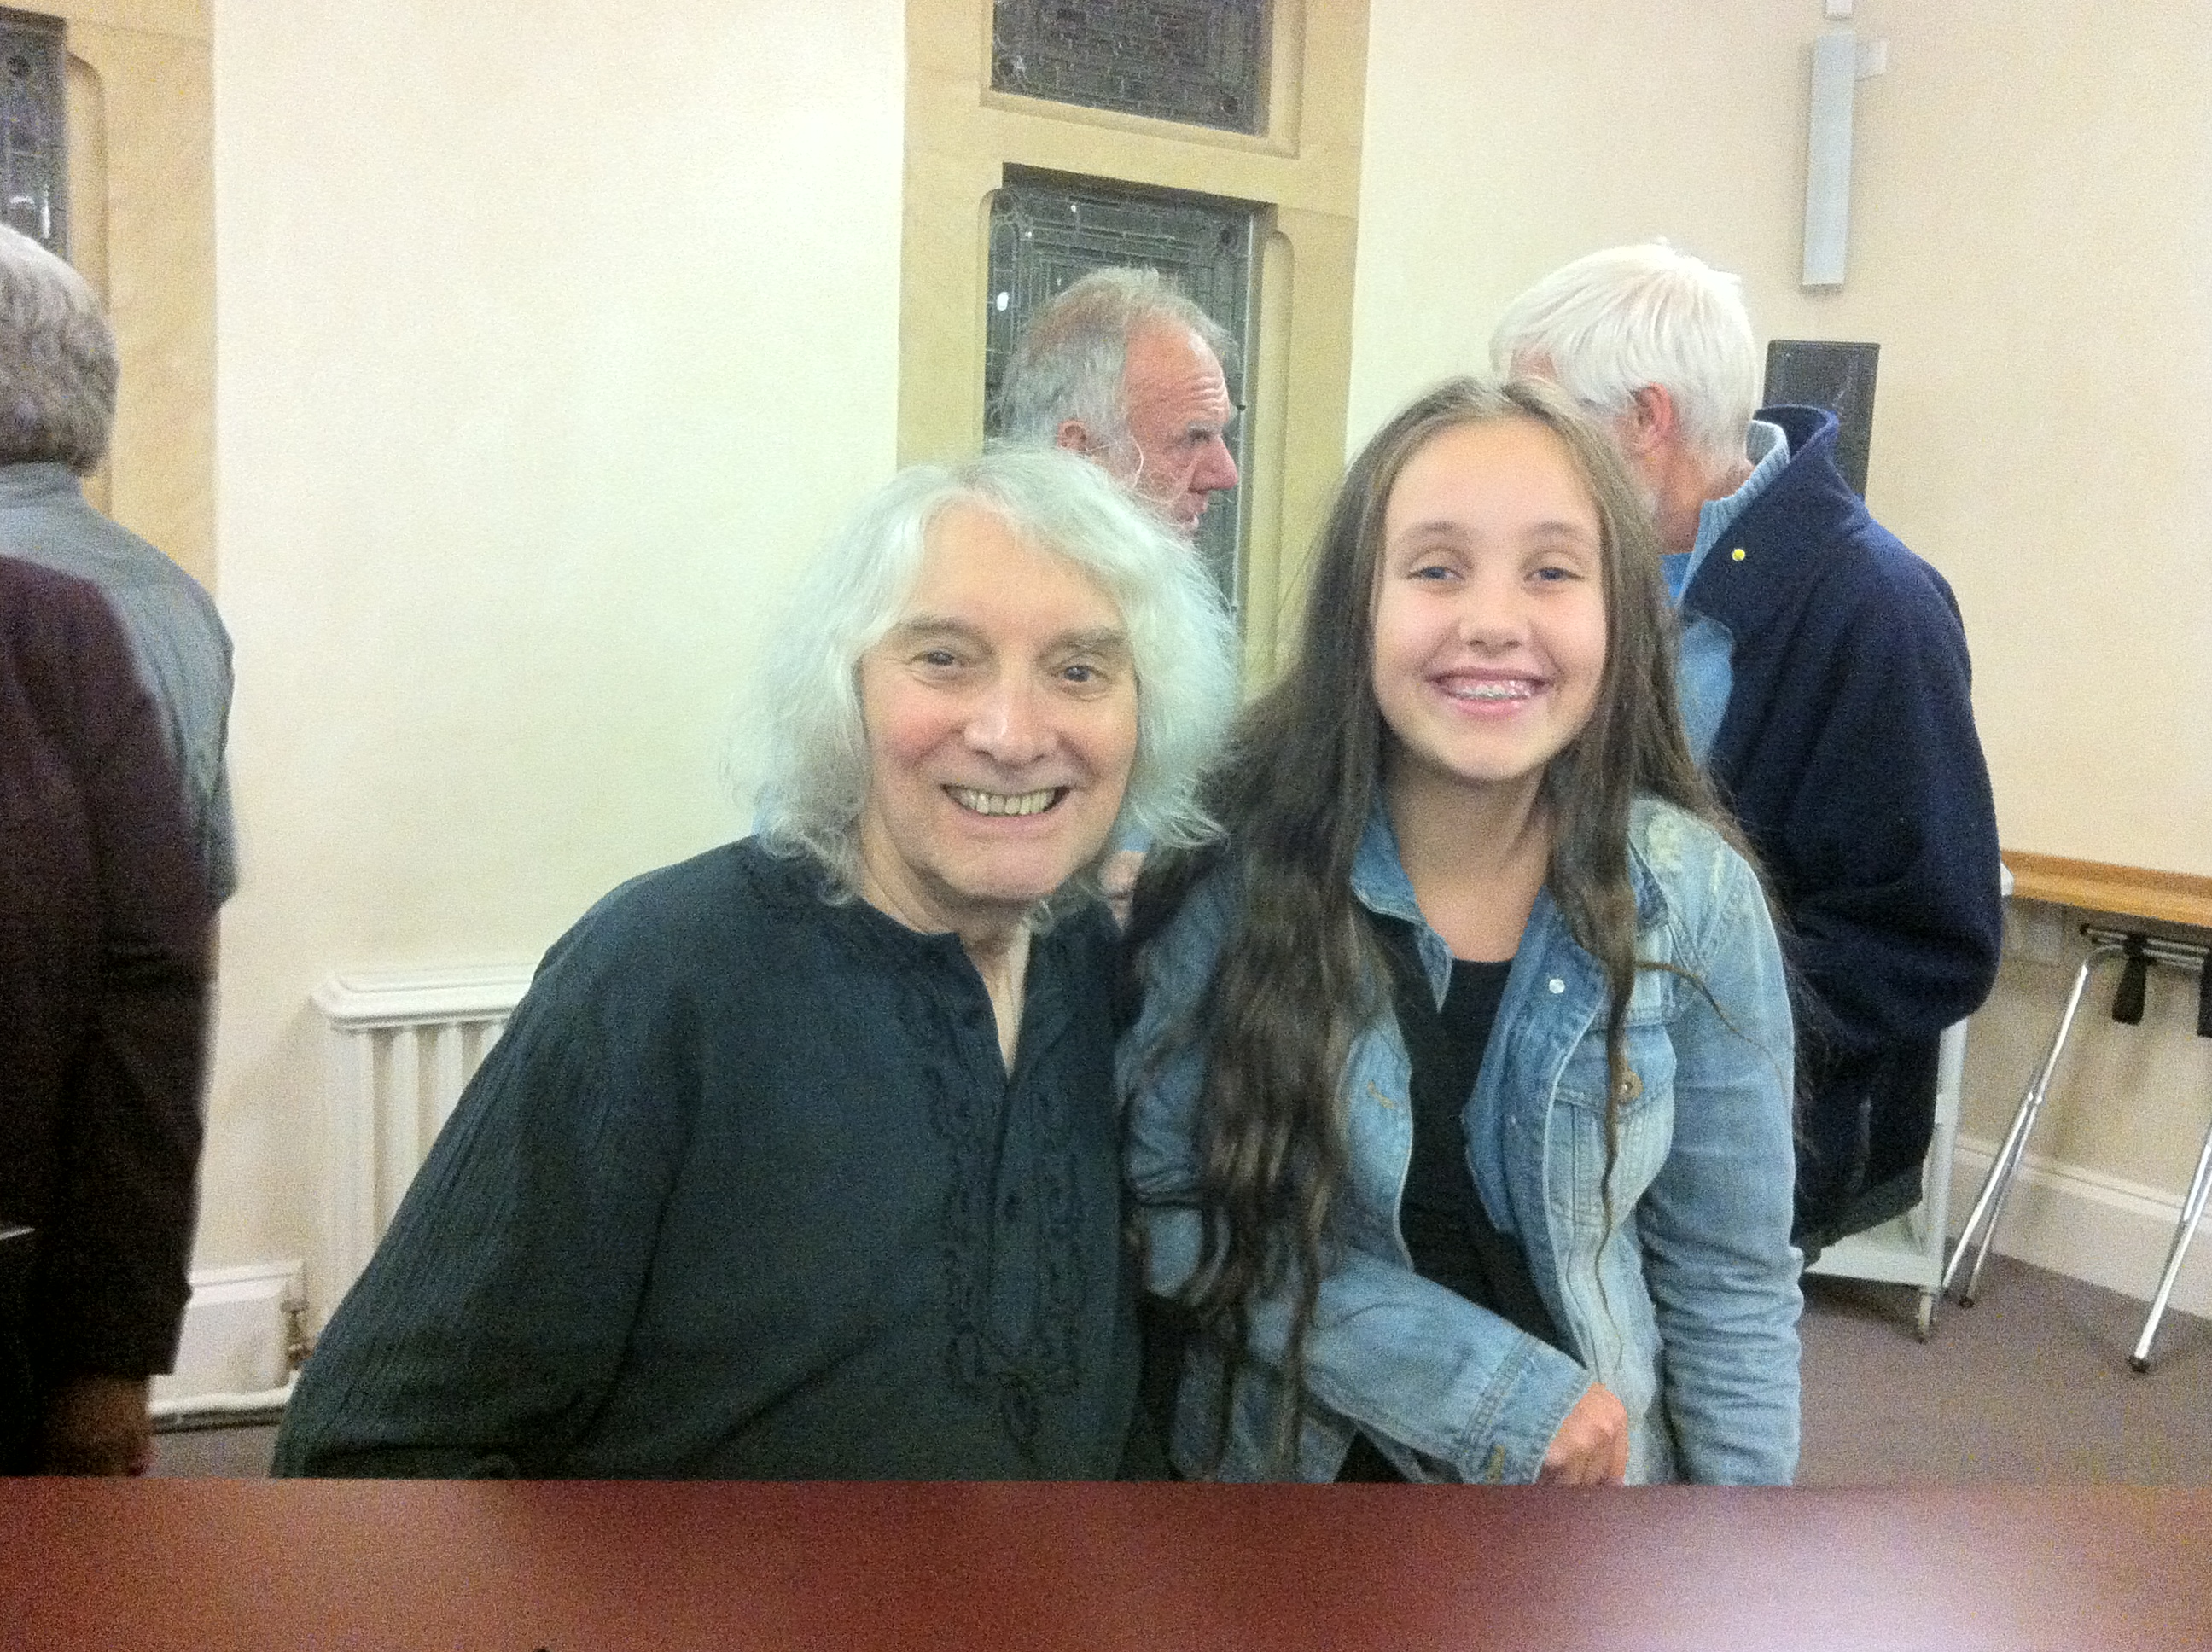 Albert Lee and I!